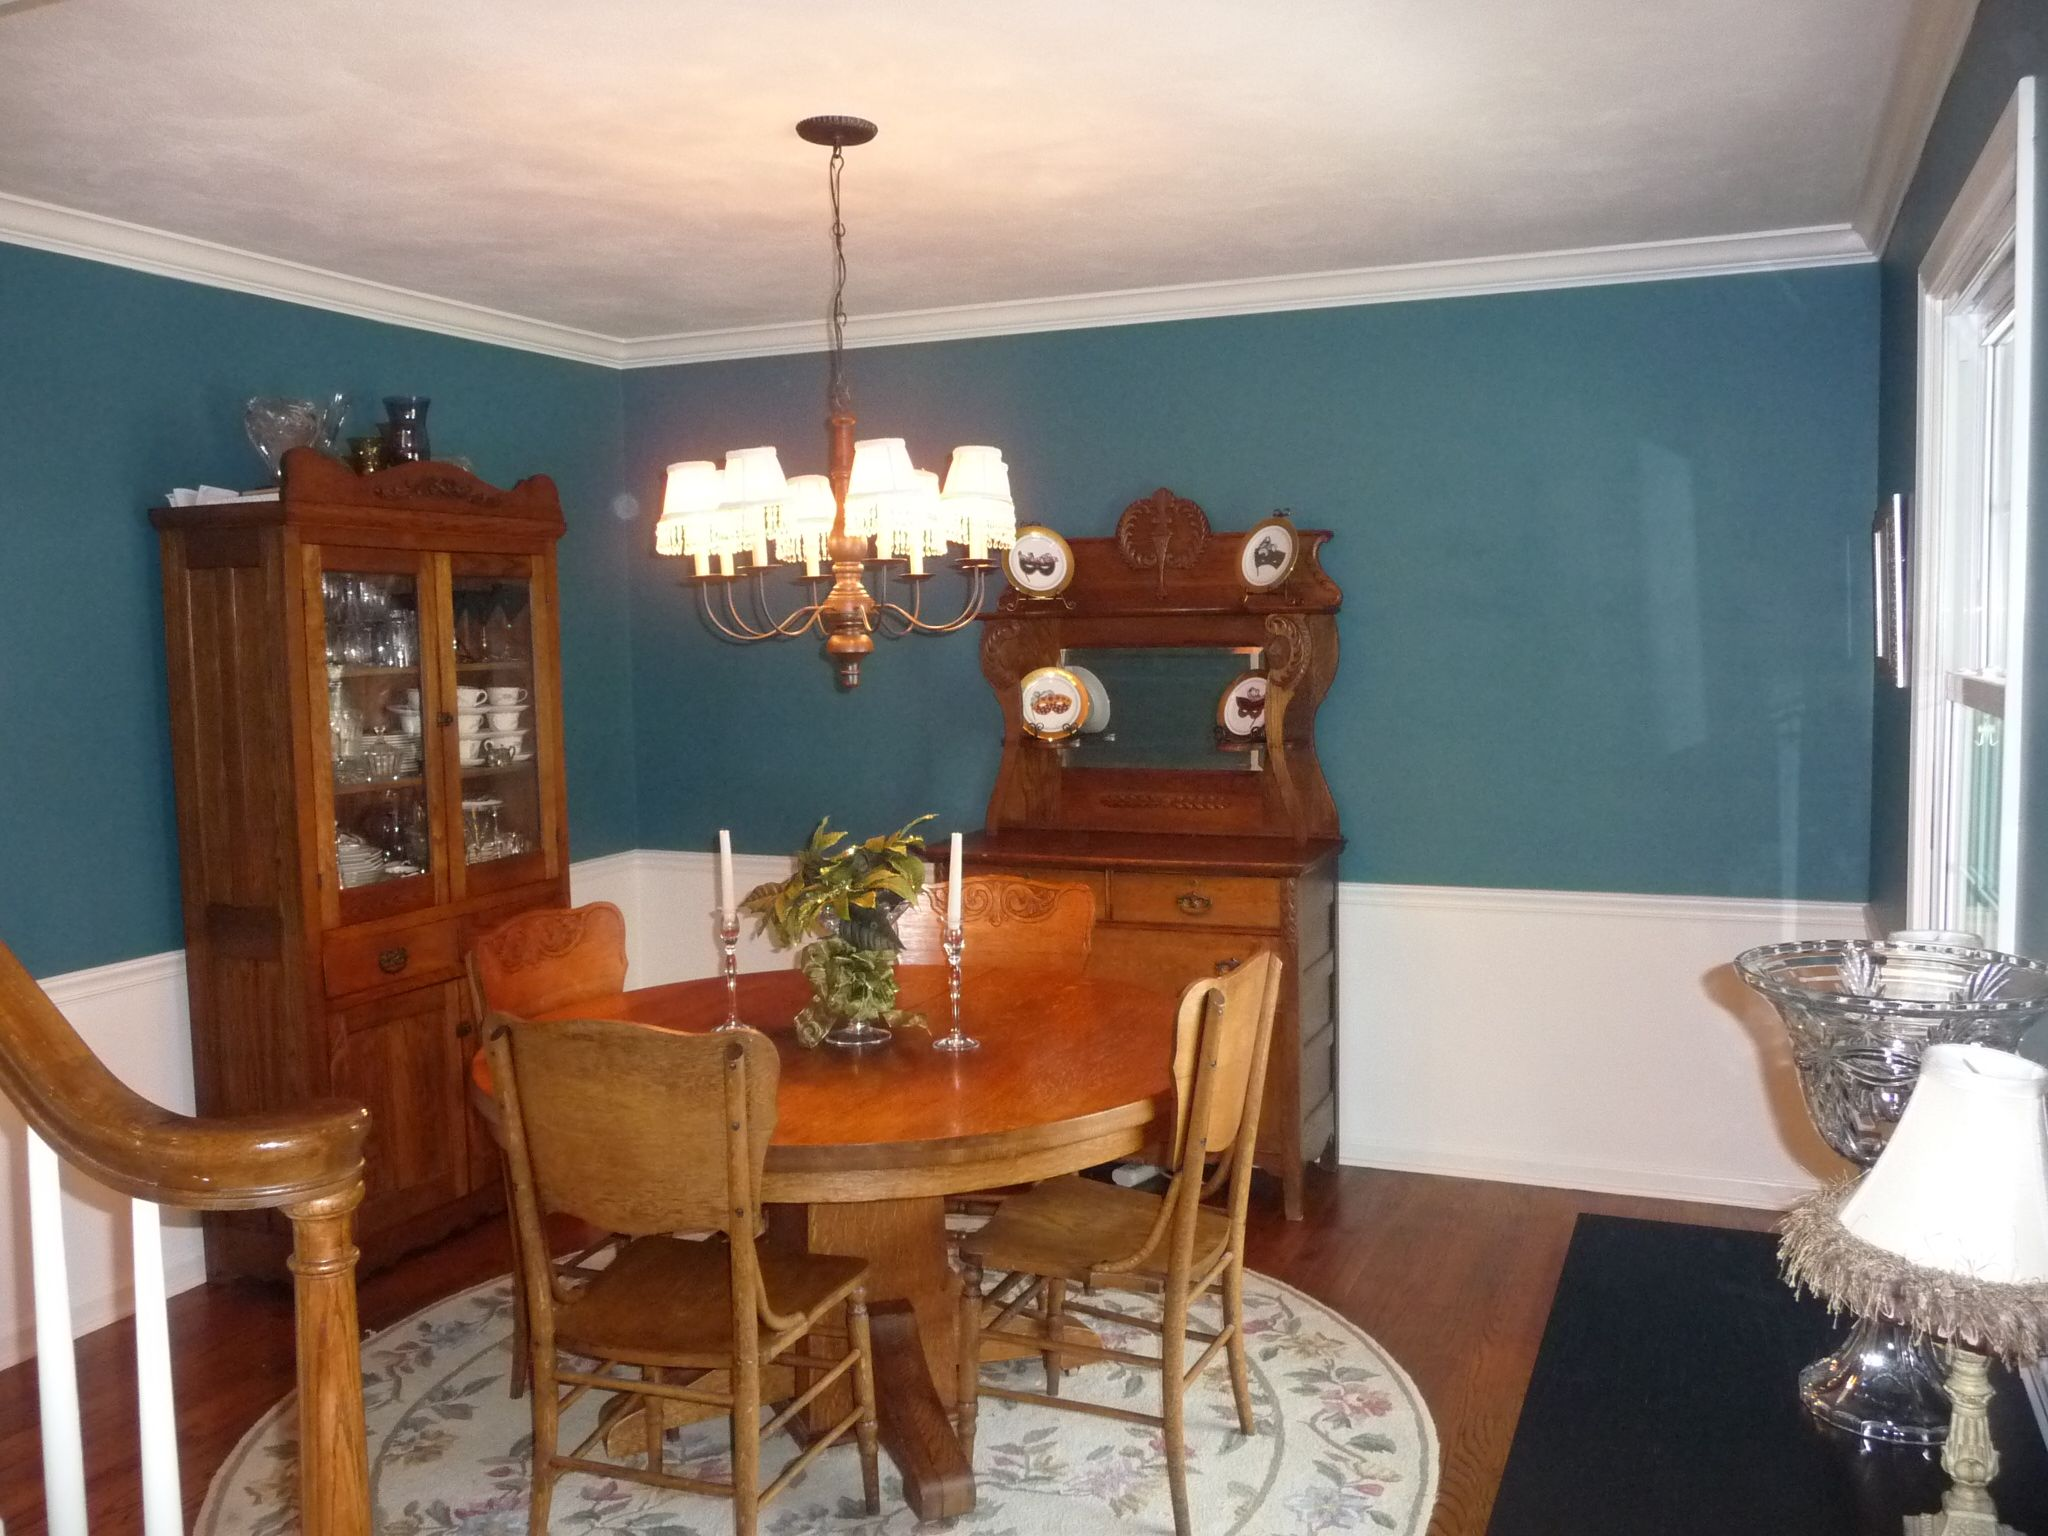 Painting Ideas For Dining Room With Chair Rail Part - 47: Dining Room After ; Paint Color Gliddeon Absolutely Teal - Recently Painted  Below Chair Rail With